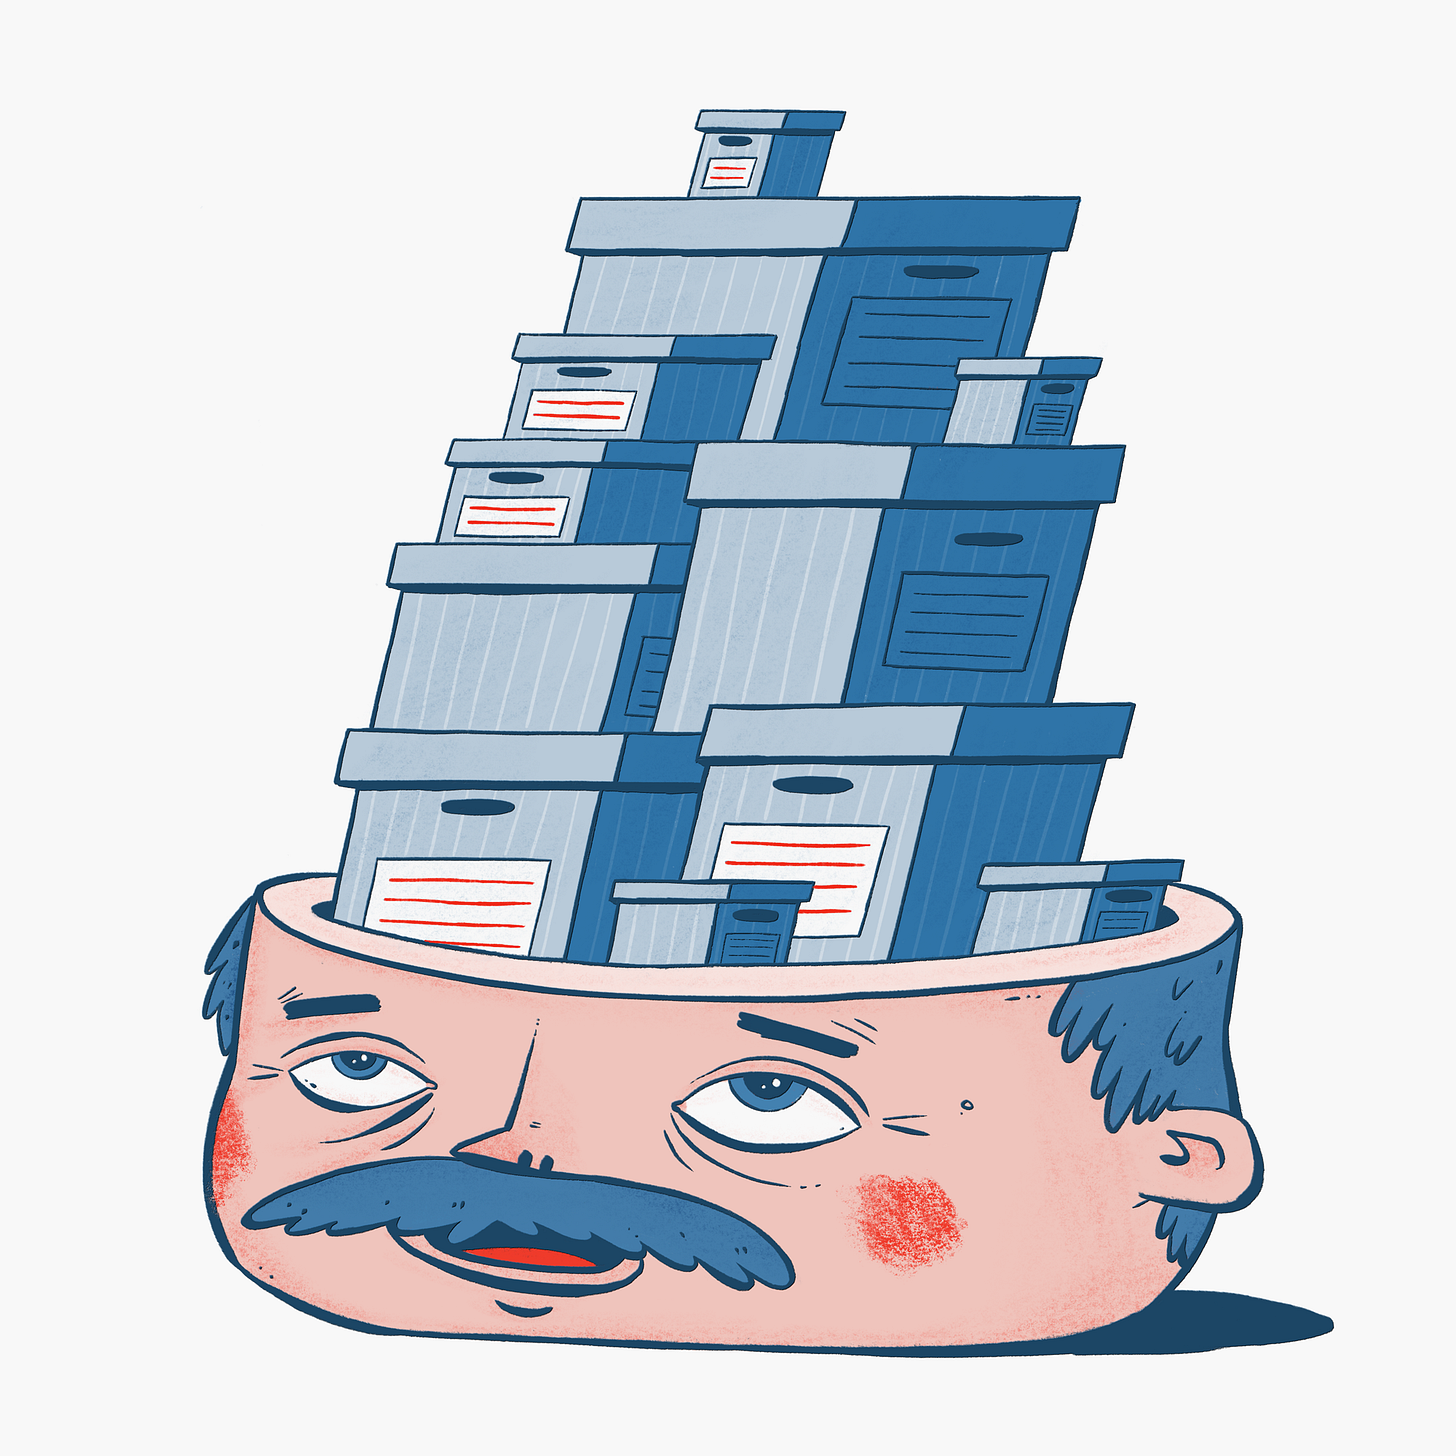 A man looks up at his head, which is open, and there are a pile of well organised boxes where his brain should be.